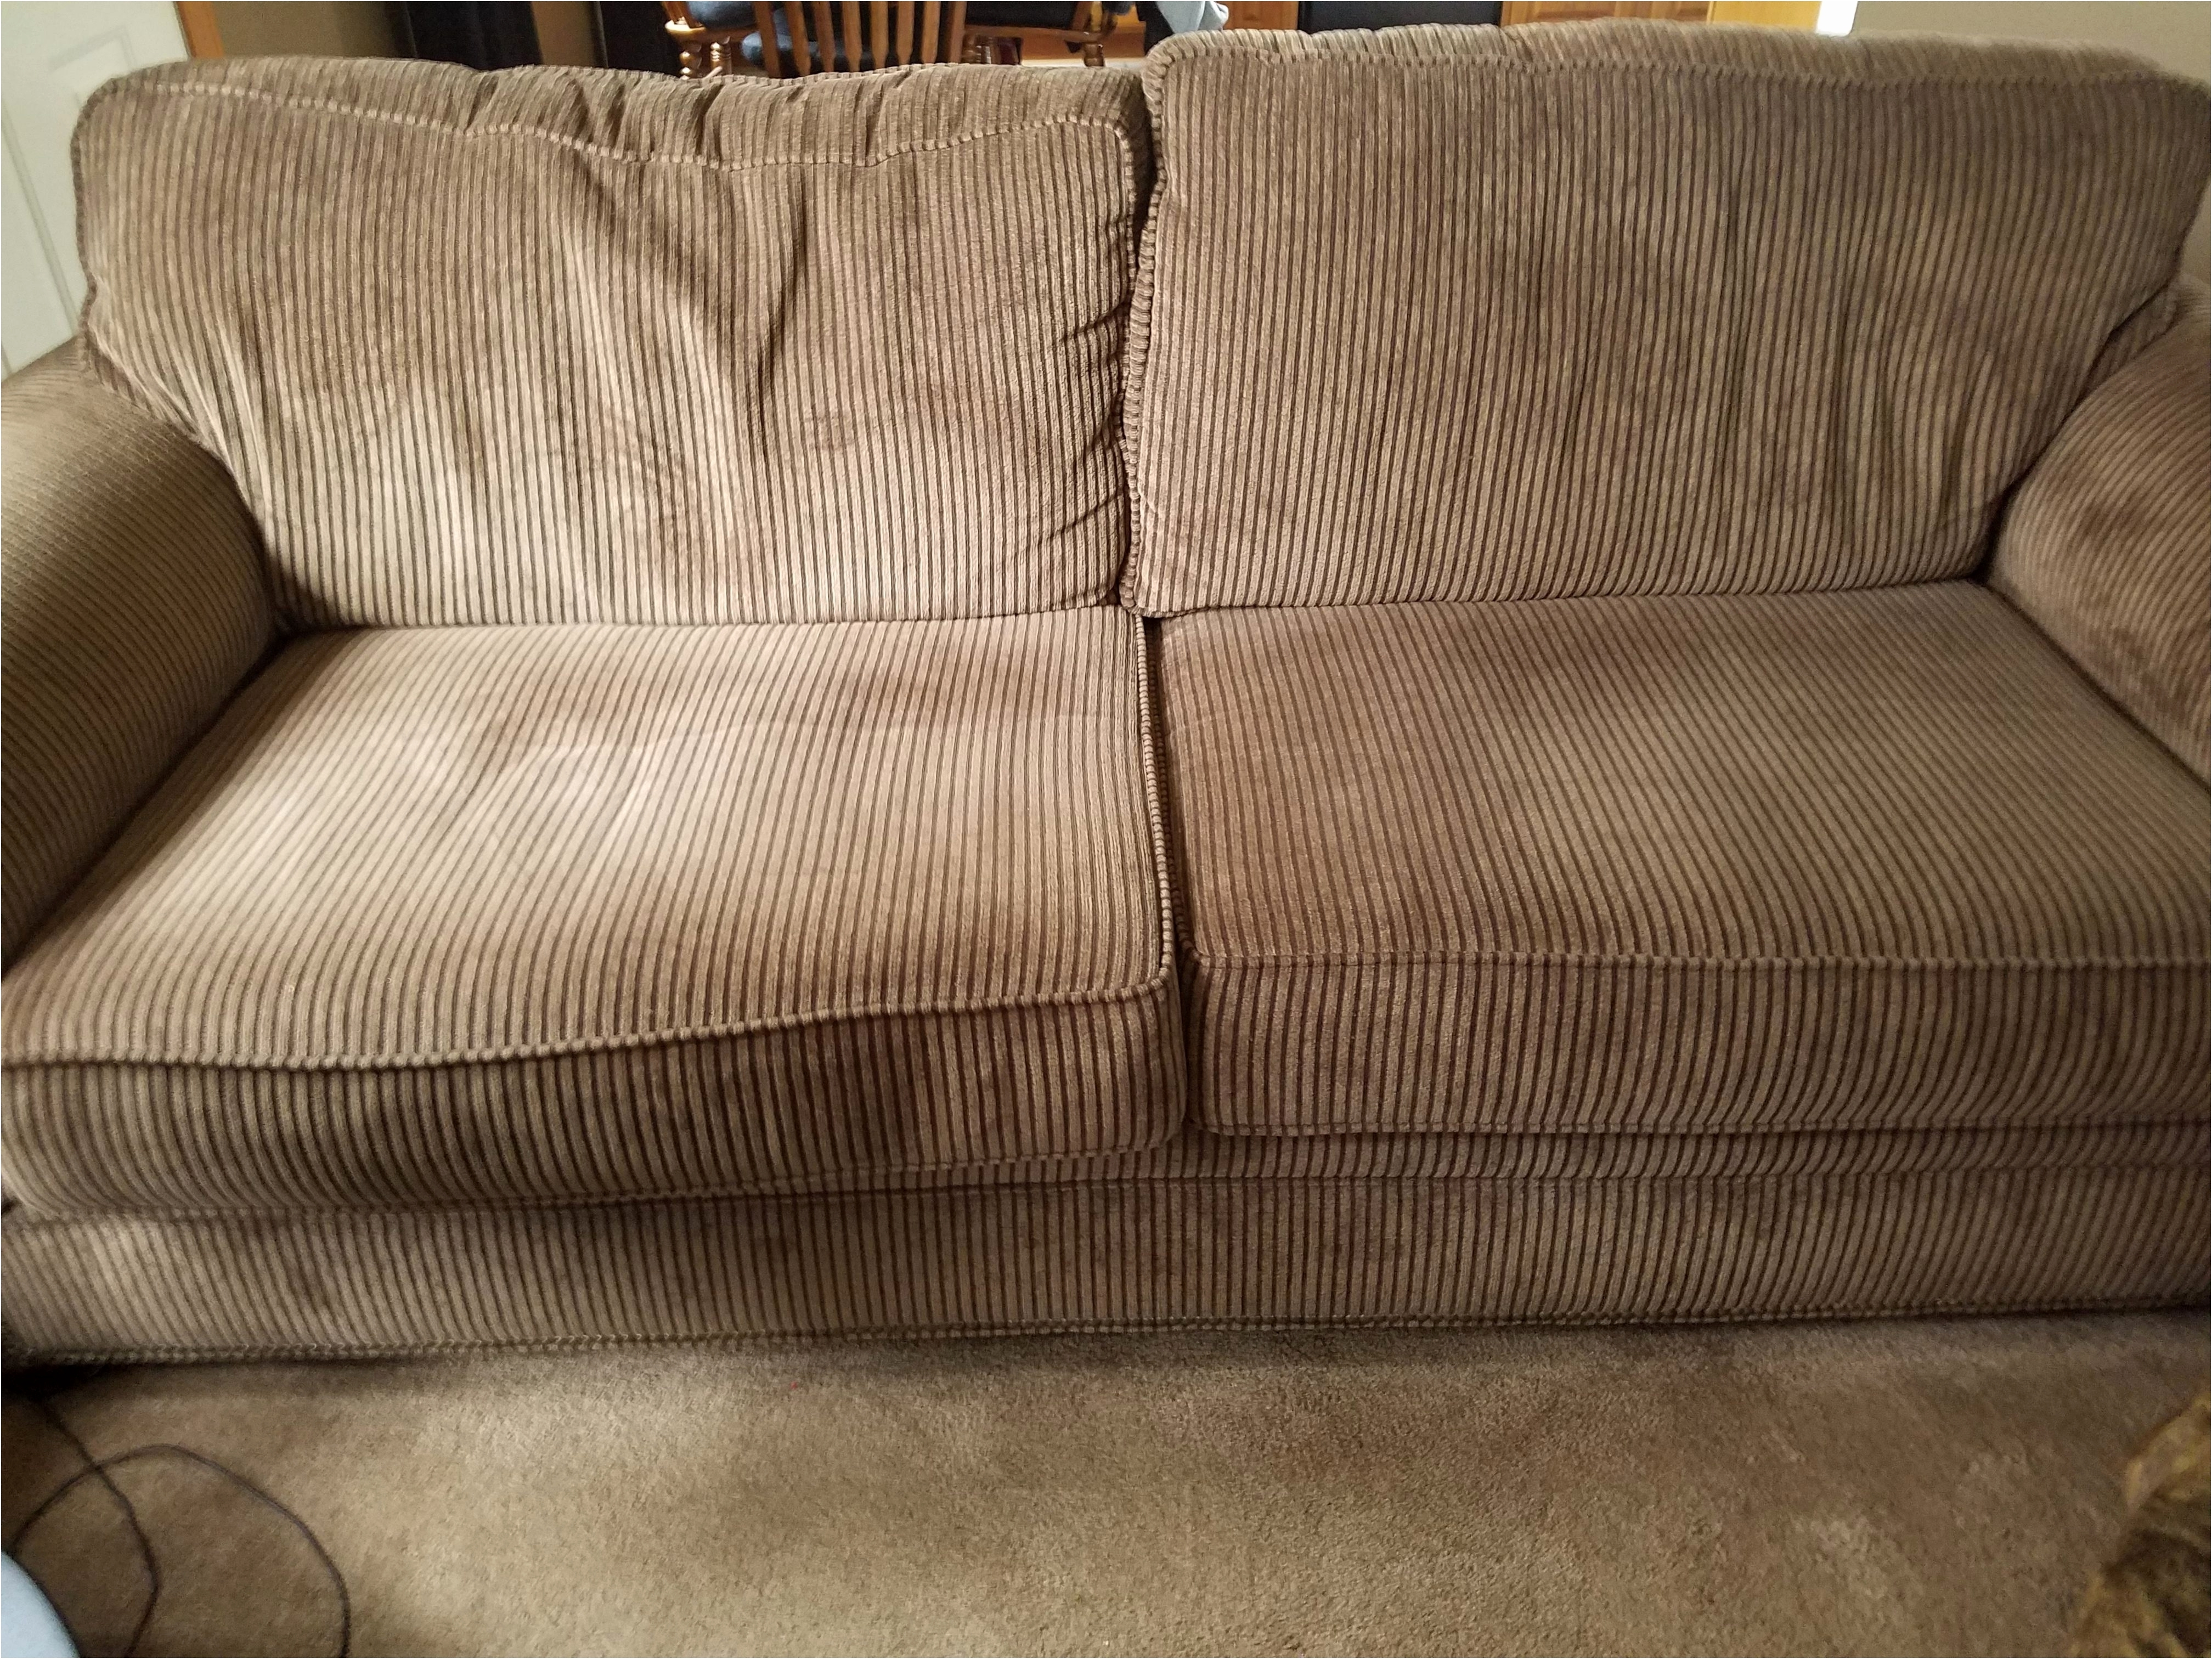 Most Recent Broyhill Sectional Sofas Inside Elegant Broyhill Cambridge Sofa Elegant – Sofa Furnitures (View 12 of 15)